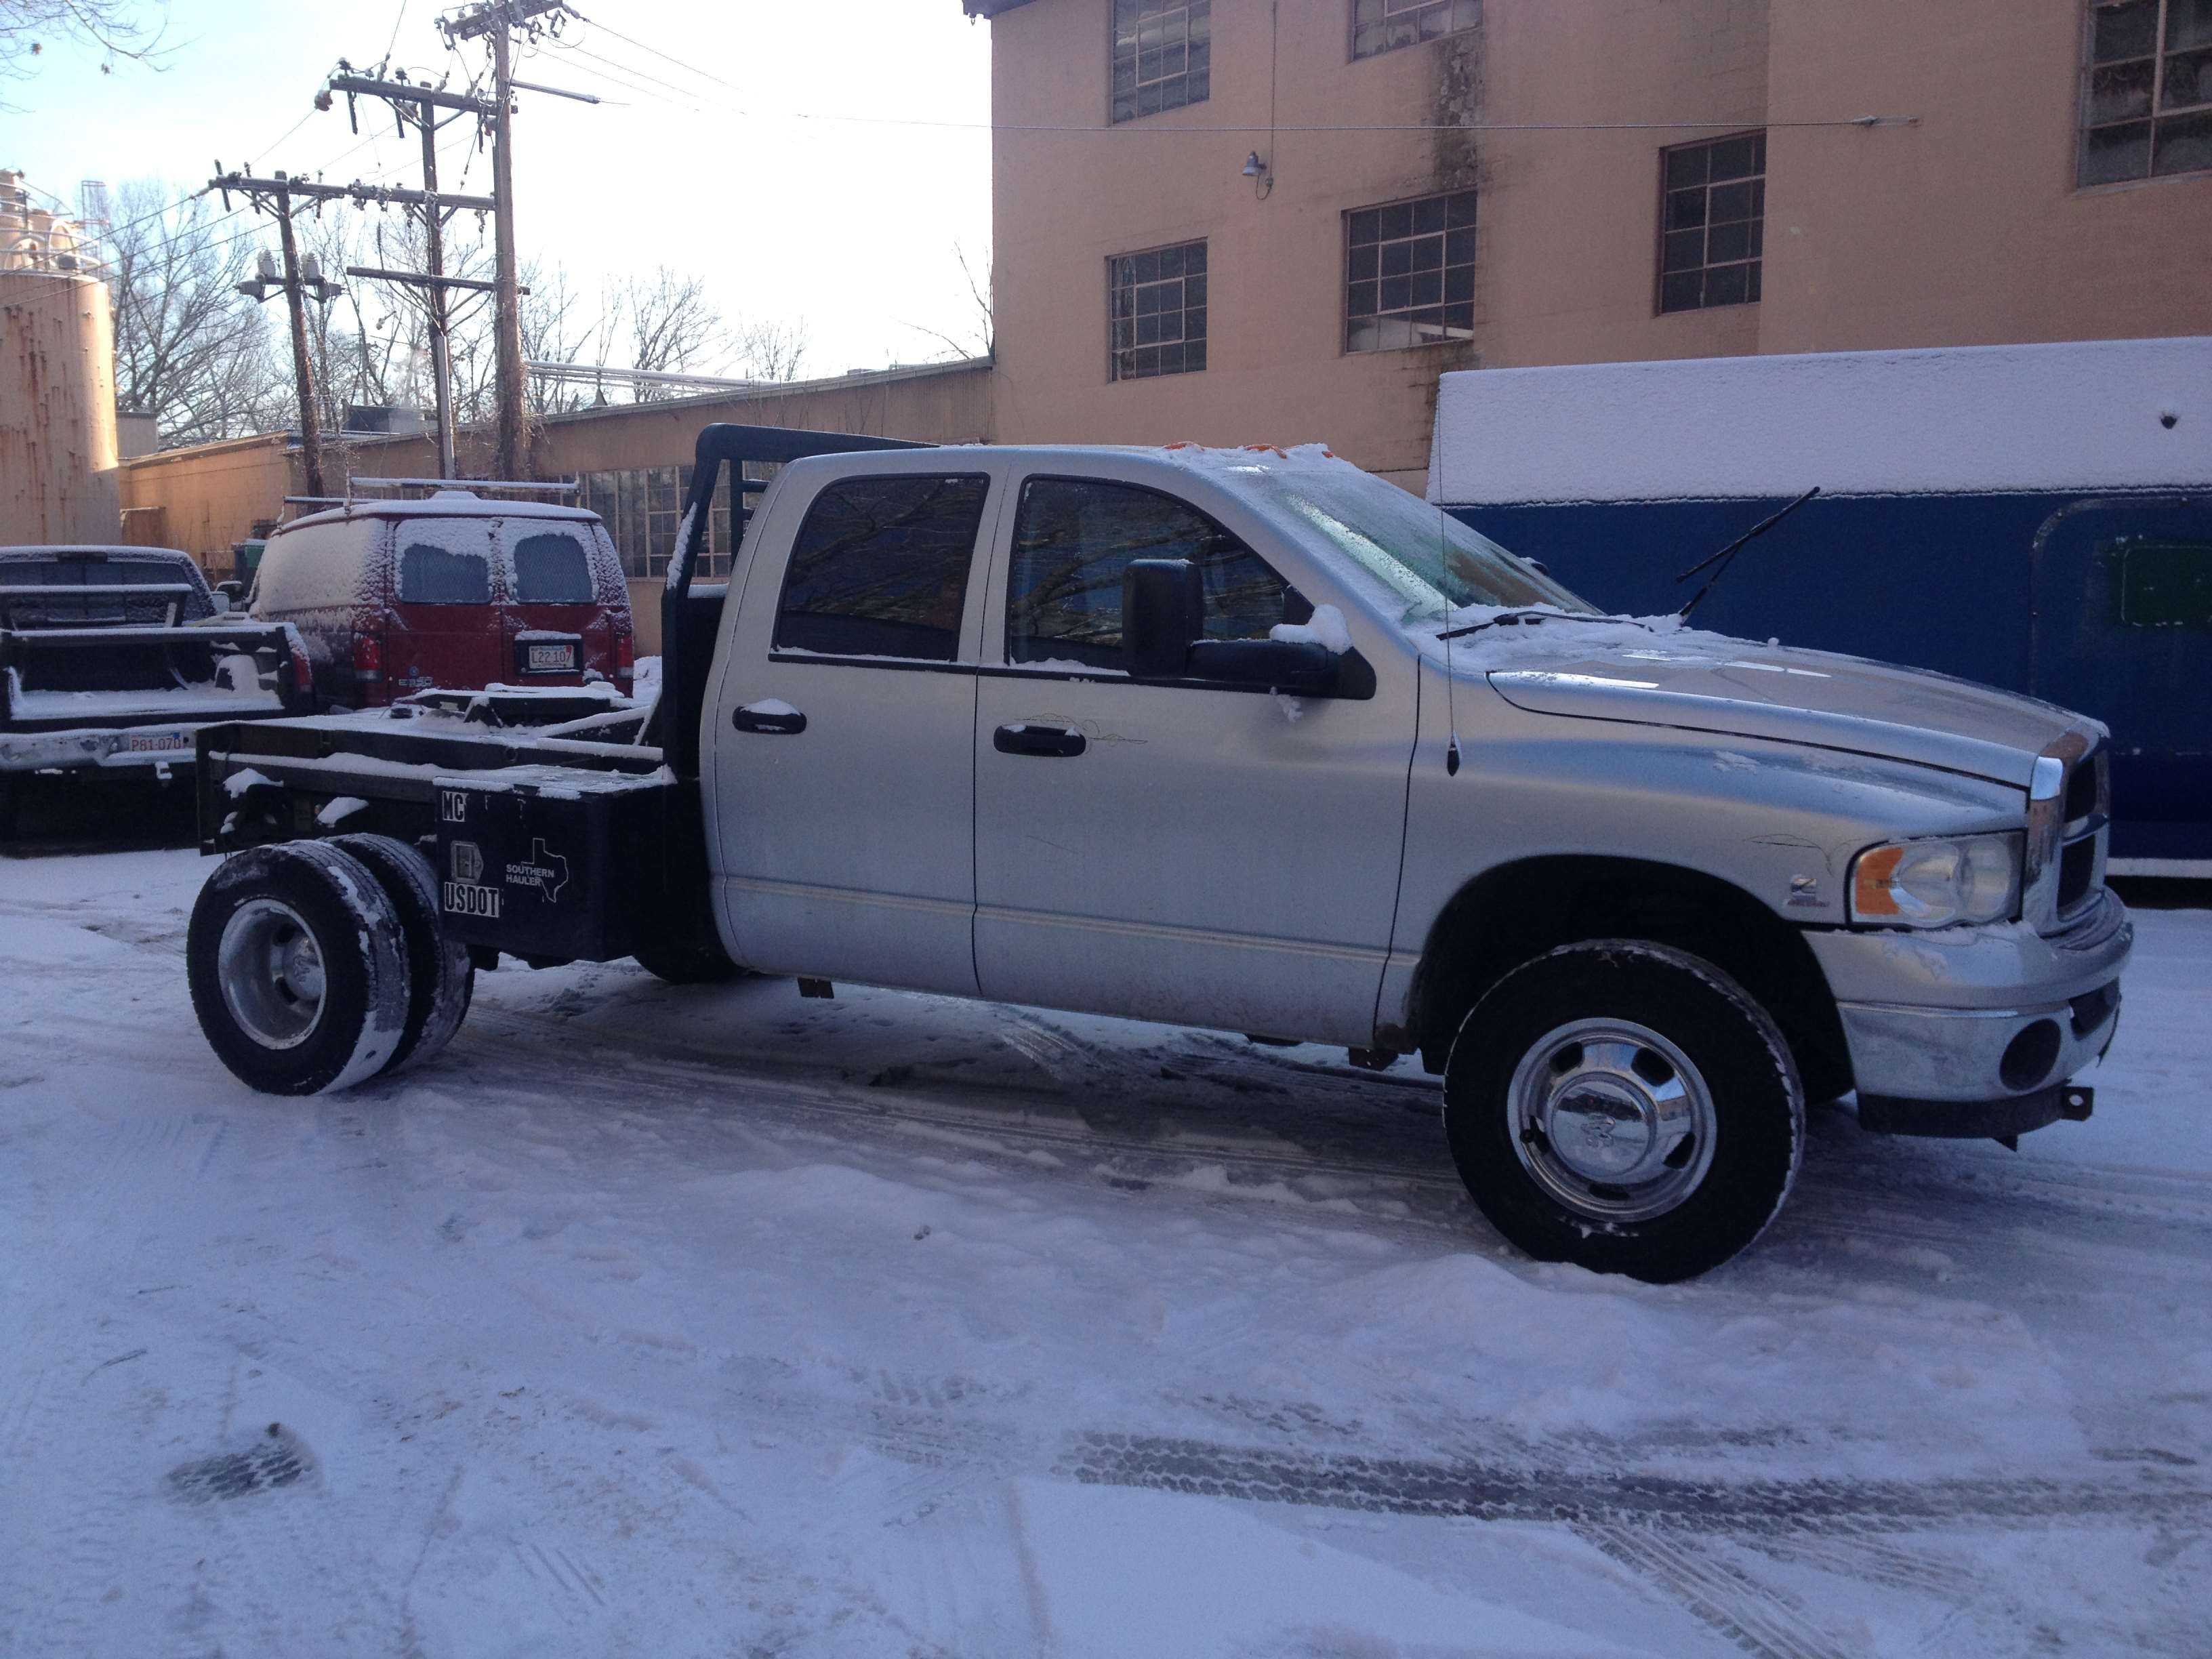 Make:  Dodge Model:  Ram 3500 Truck Year:  2003 Body Style:  Commercial Vehicles Exterior Color: Silver Interior Color: Black Doors: Four Door Vehicle Condition: Good  Phone:  978-870-9014  For More Info Visit: http://UnitedCarExchange.com/a1/2003-Dodge-Ram%203500%20Truck-308993437061